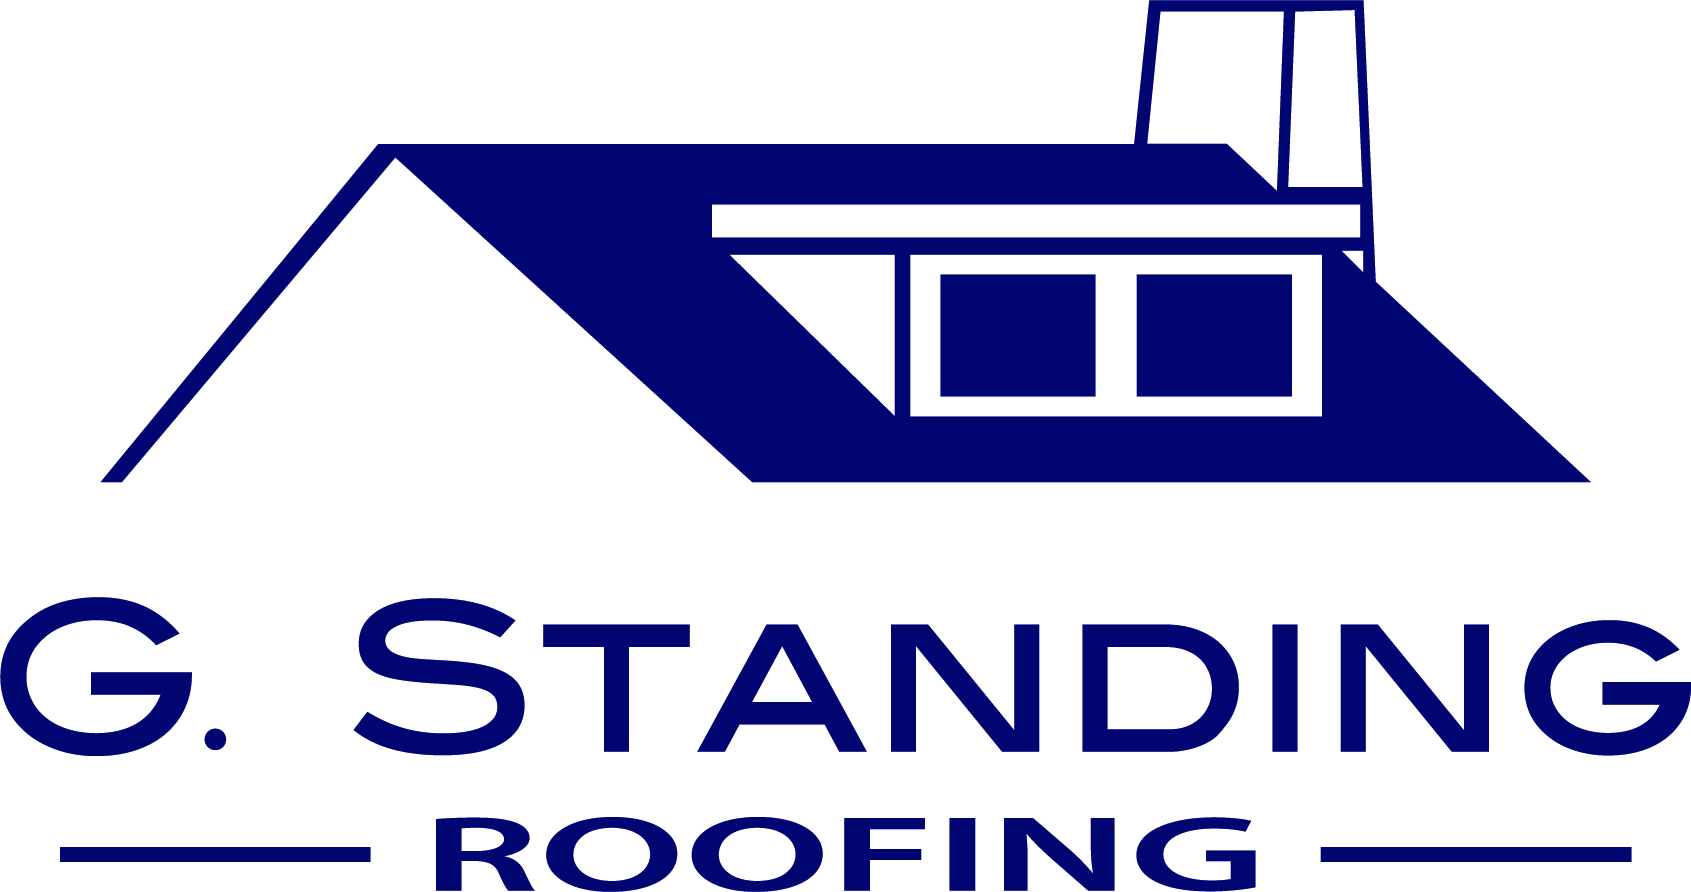 G. Standing Roofing